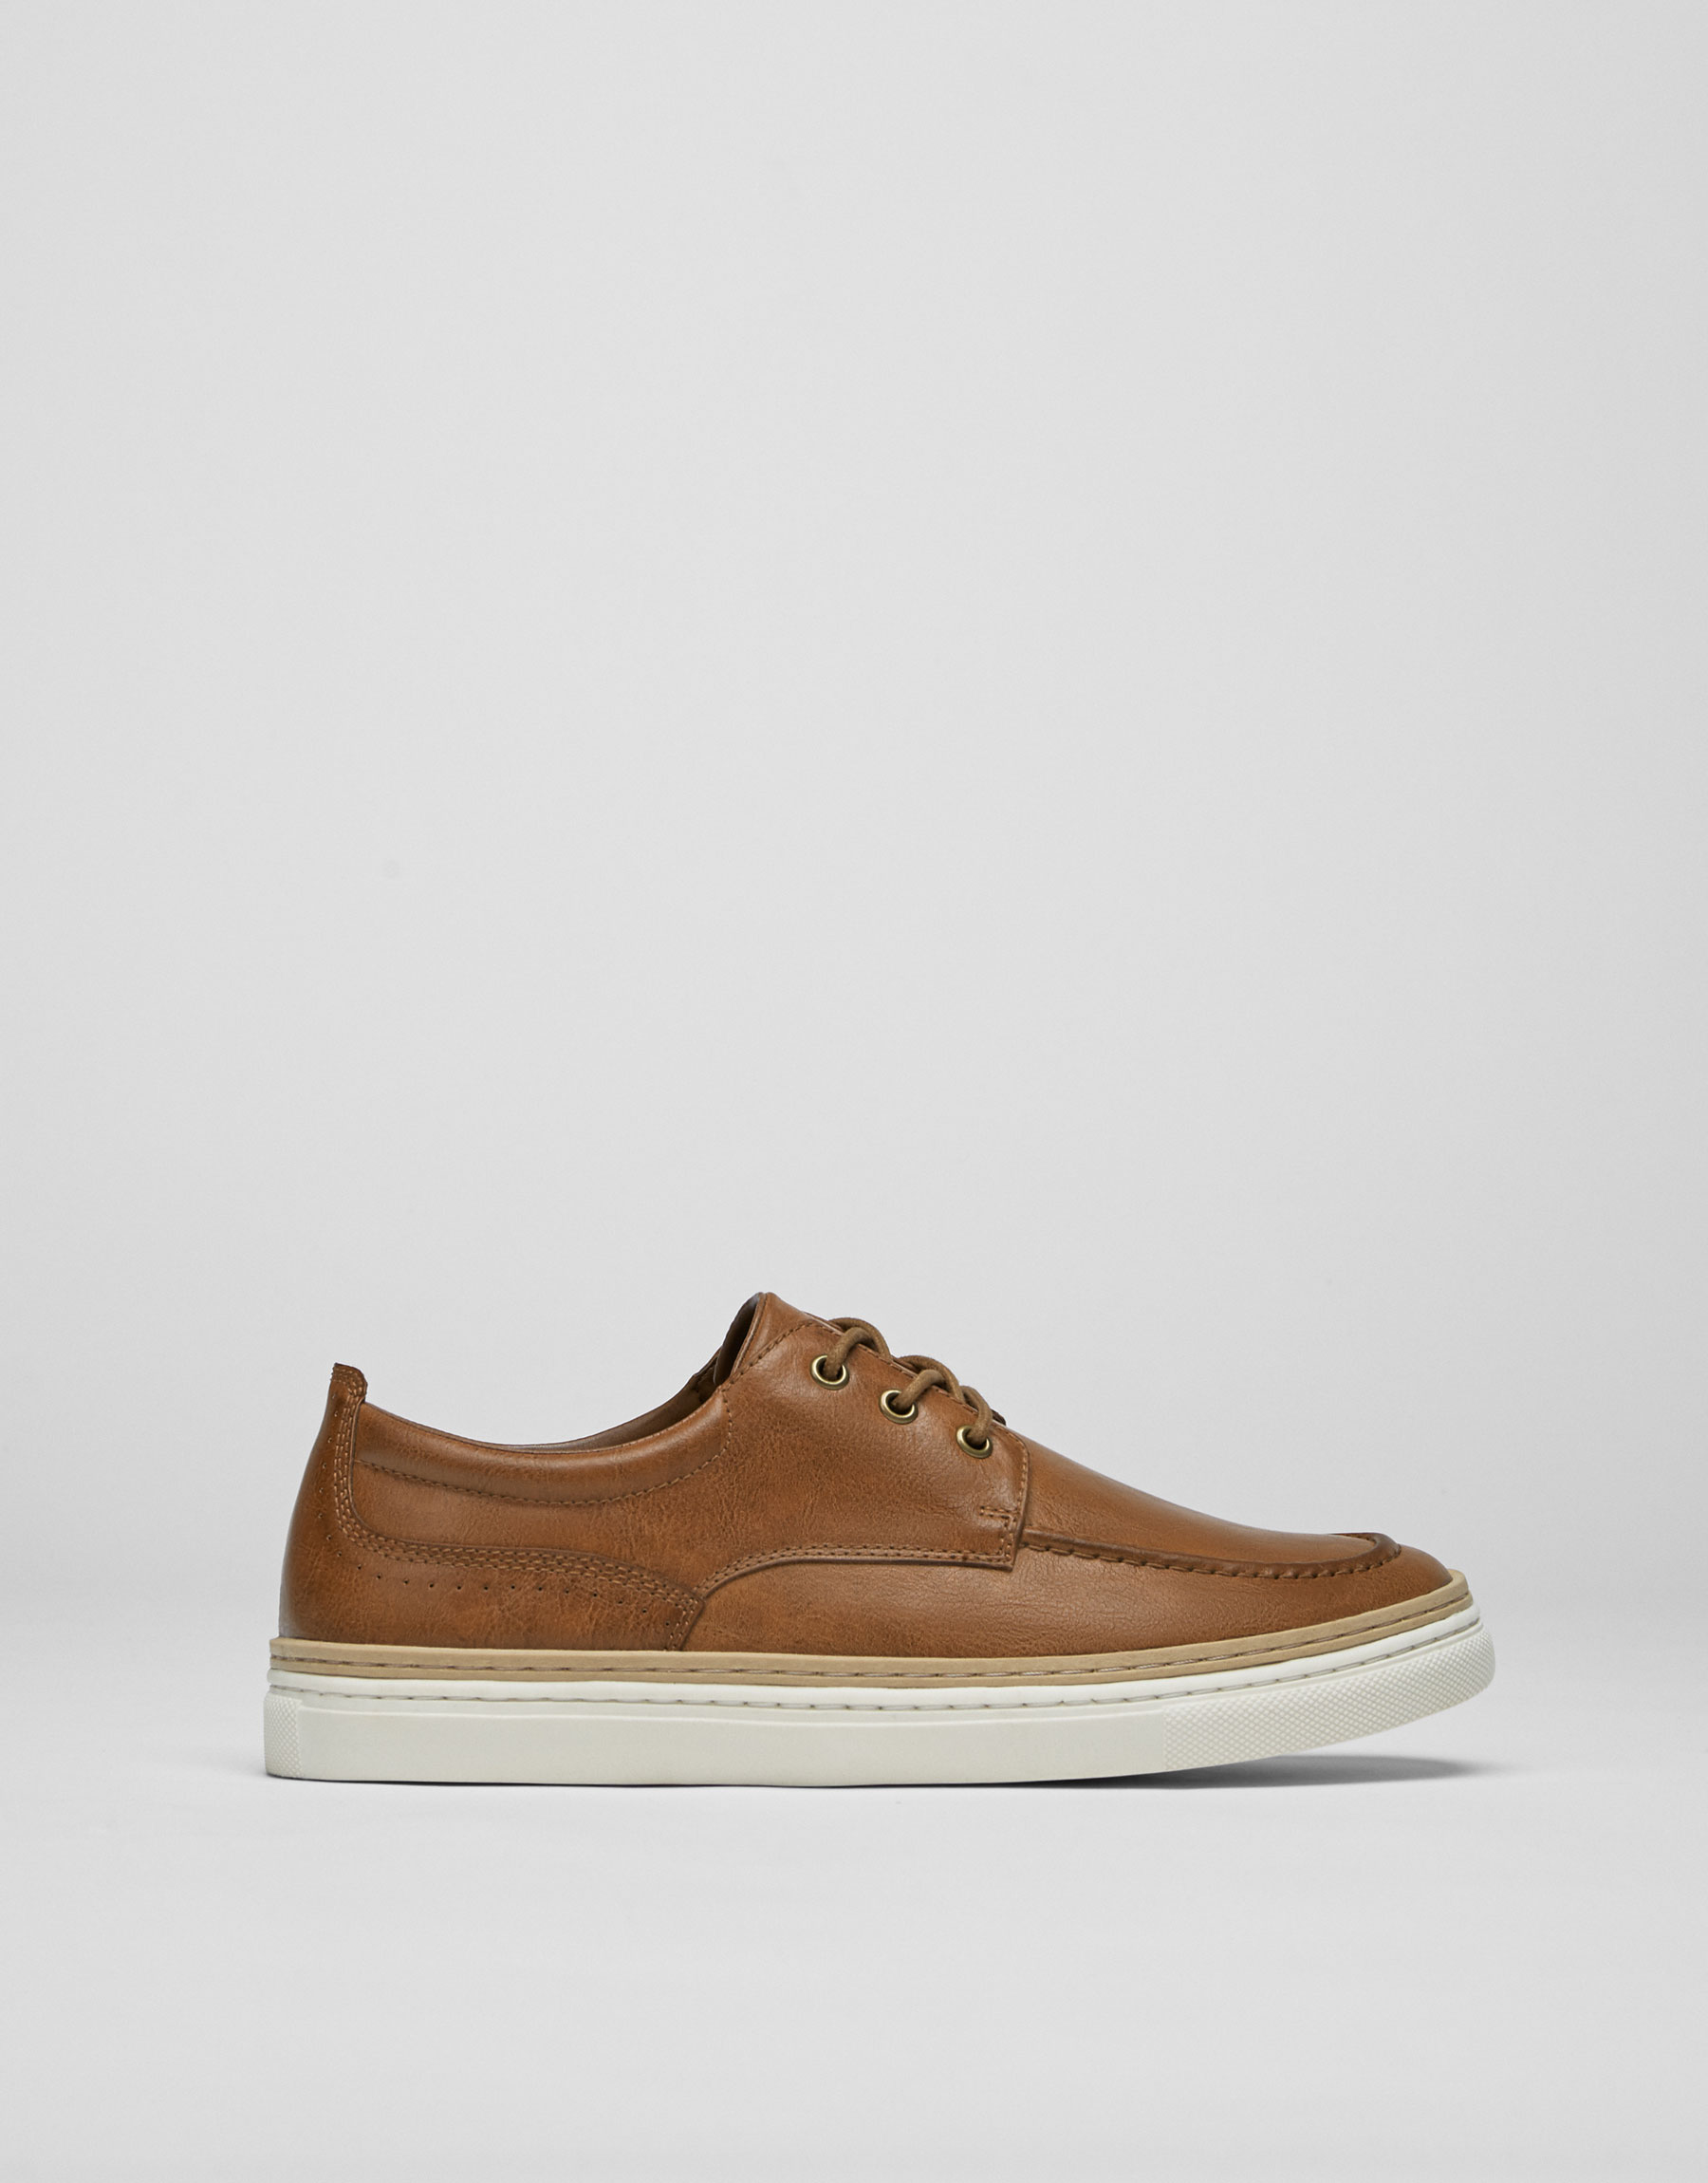 Plimsolls with welt